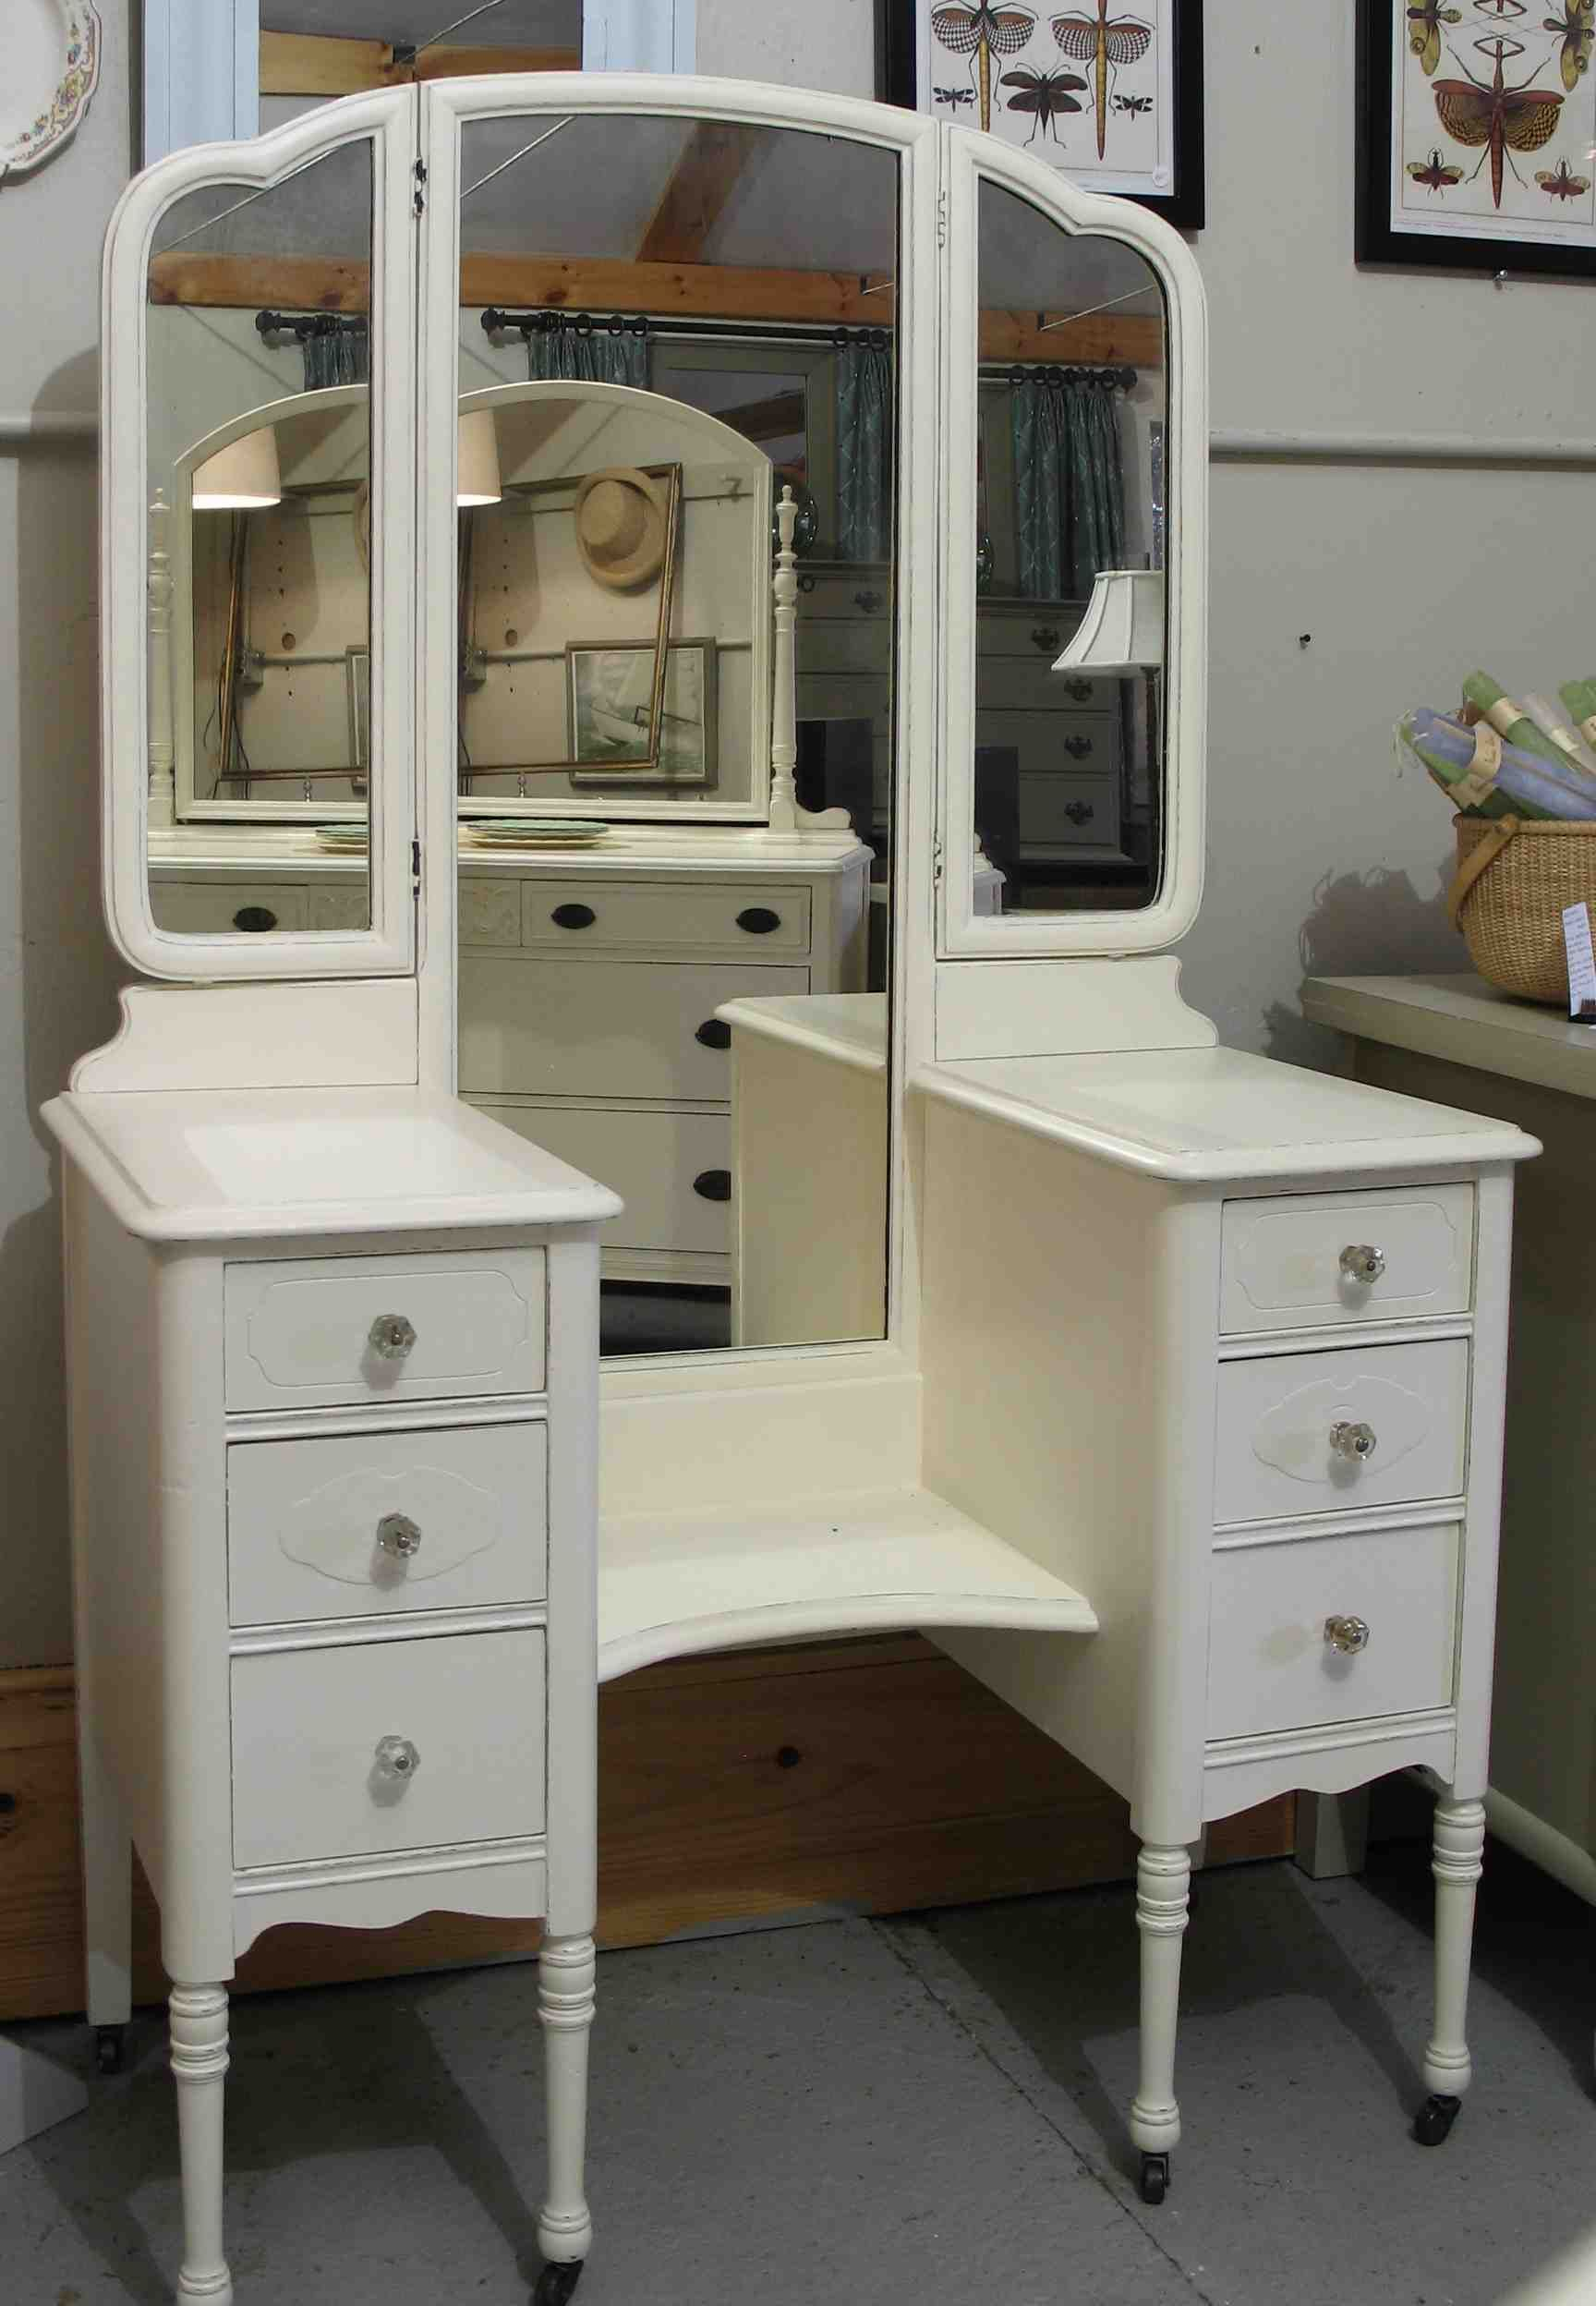 Furniture Old And Vintage Wooden Makeup Vanity Table With 3 Fold Mirror Set Shelves